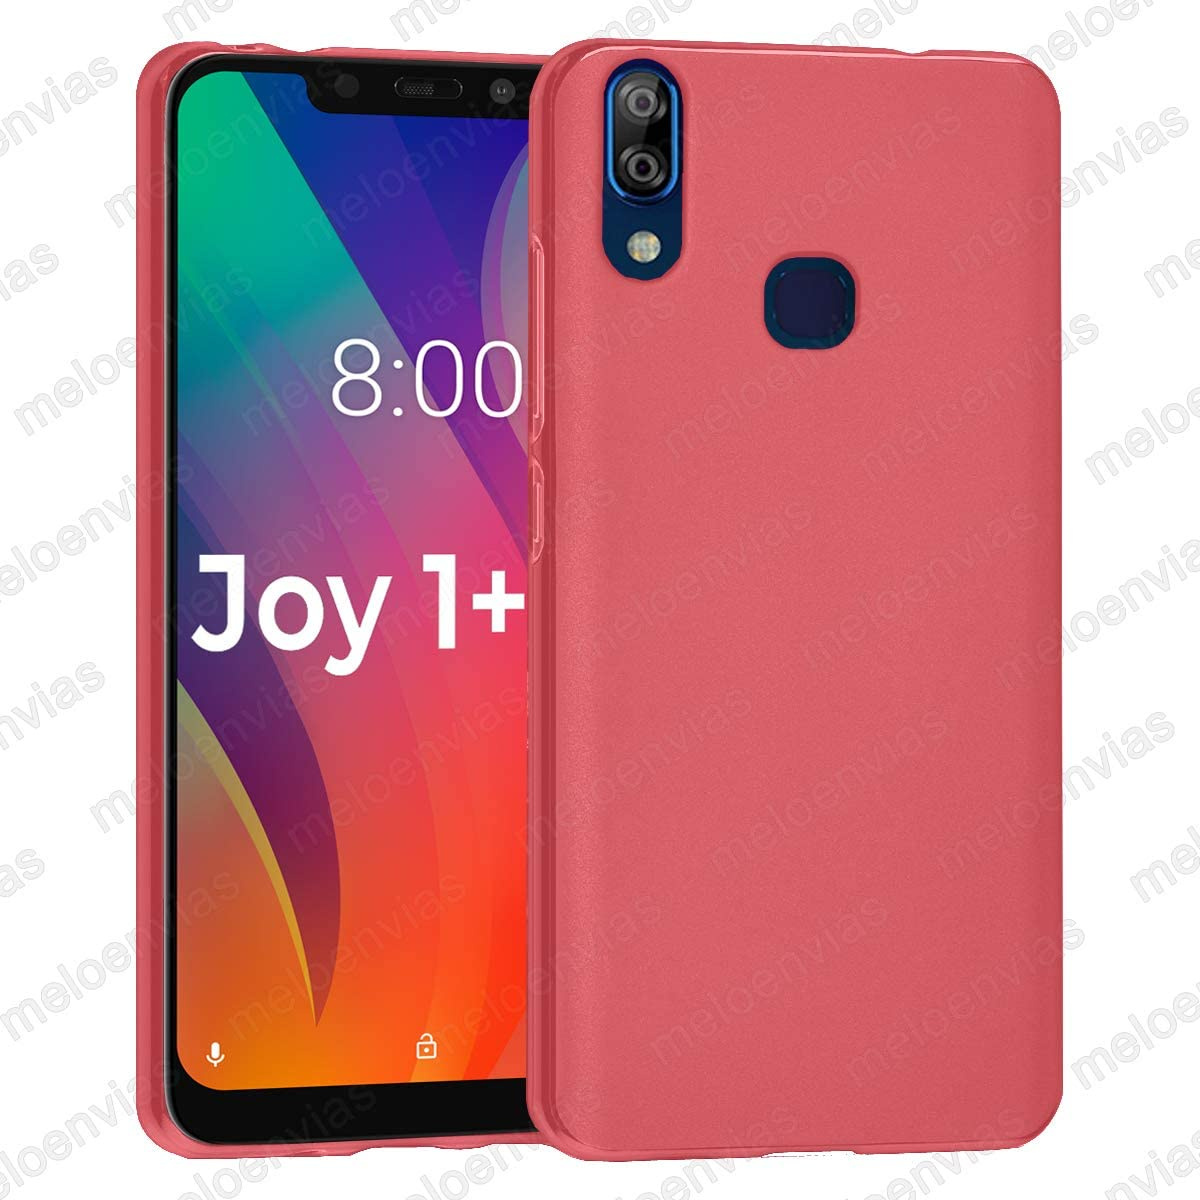 Funda para Vsmart Joy 1 + Plus Gel TPU Lisa Mate Color Rosa ...